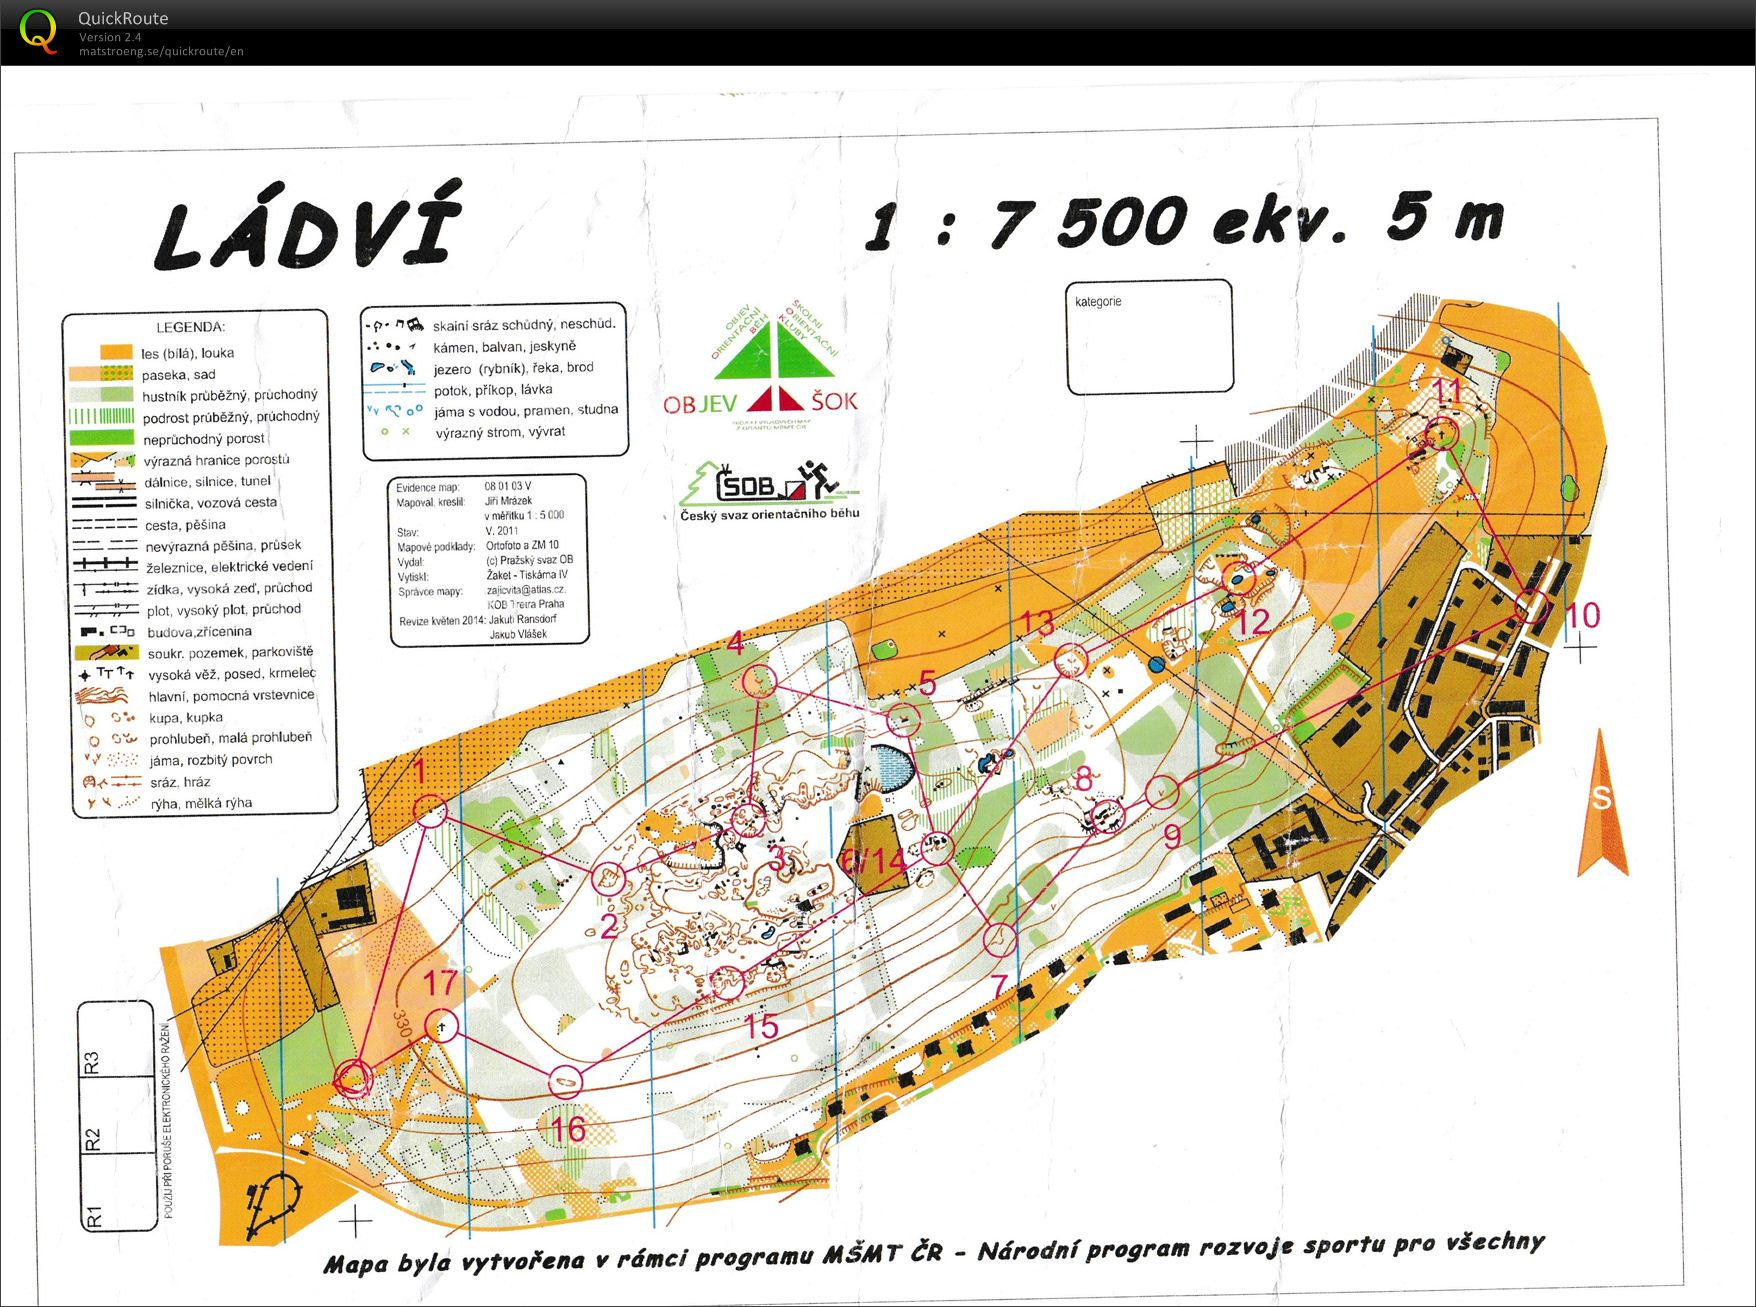 Ladvi Off Road May 20th 2016 Orienteering Map From Bara Halamova